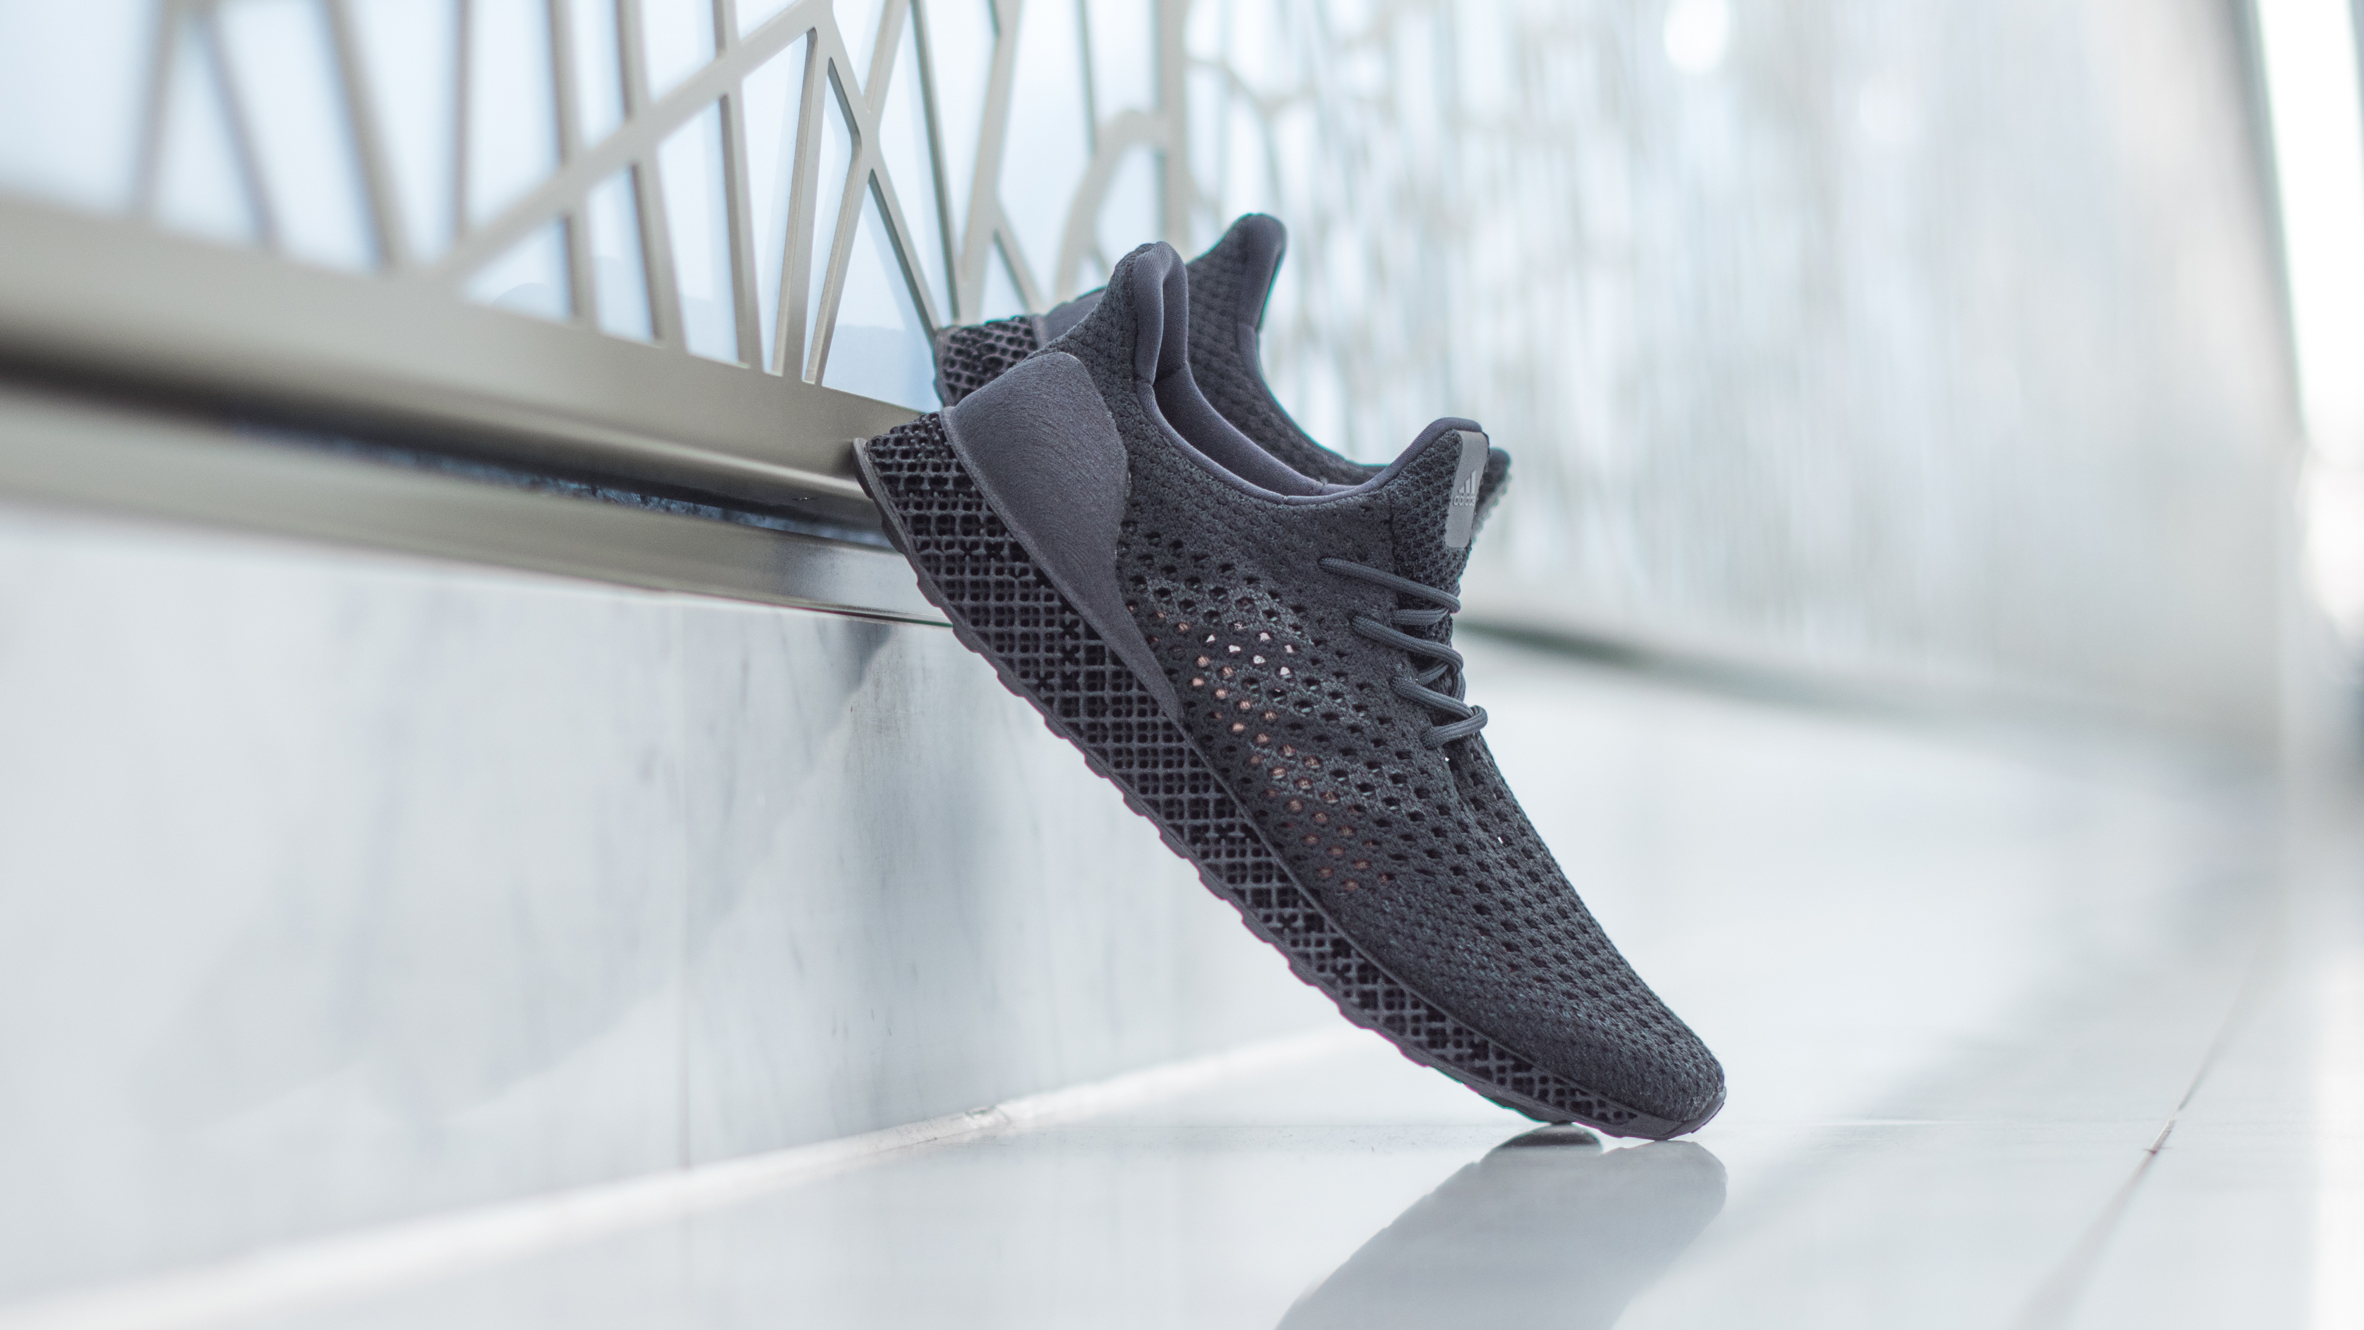 584a0d4f9 3D-printed Adidas trainers go on sale